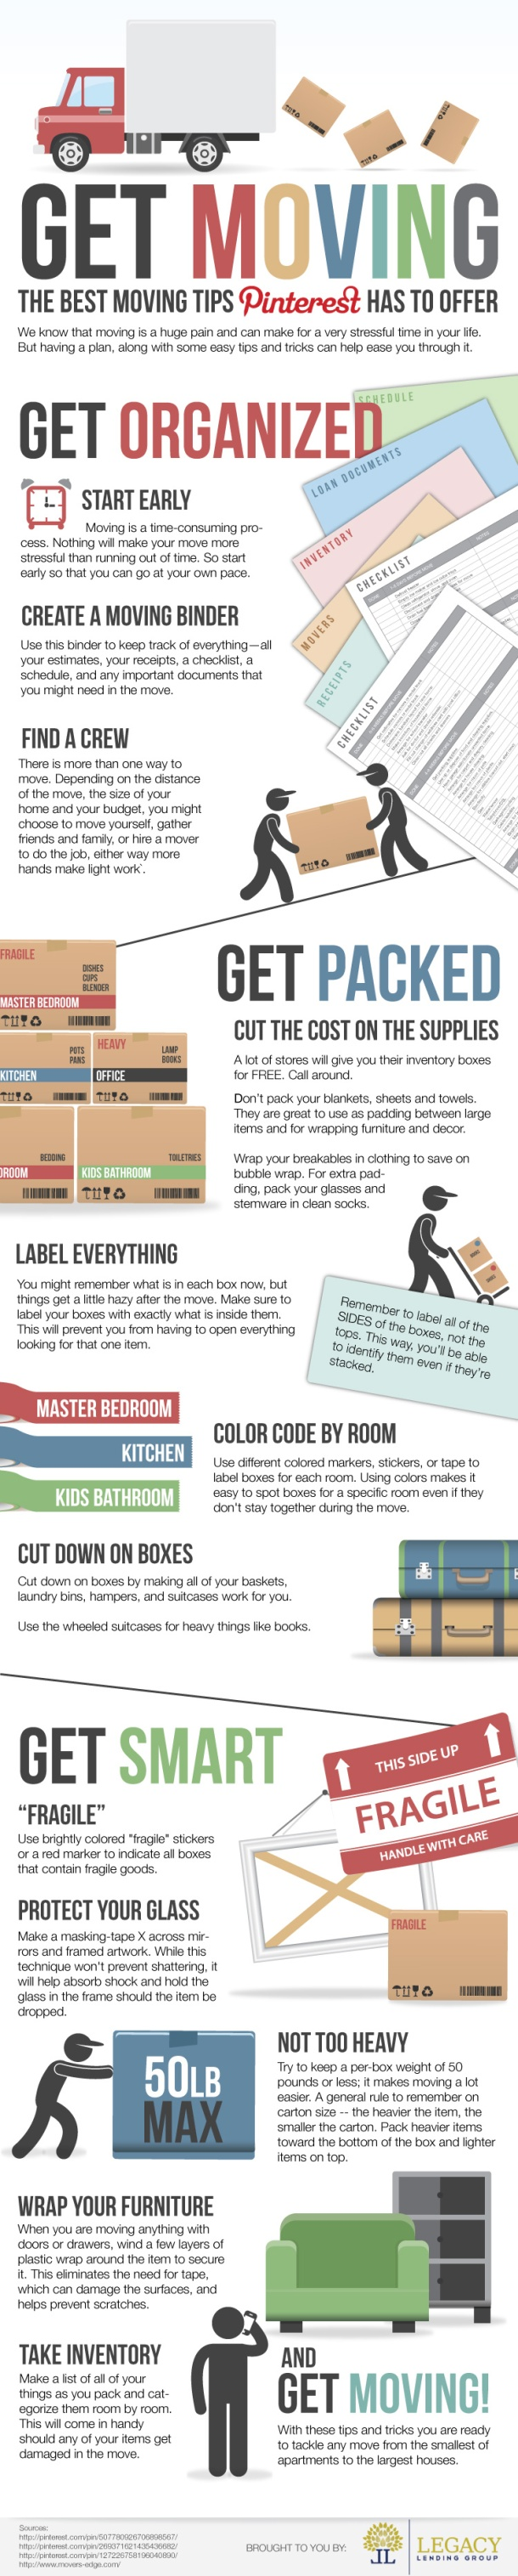 The Best Moving Tips Pinterest Can Offer